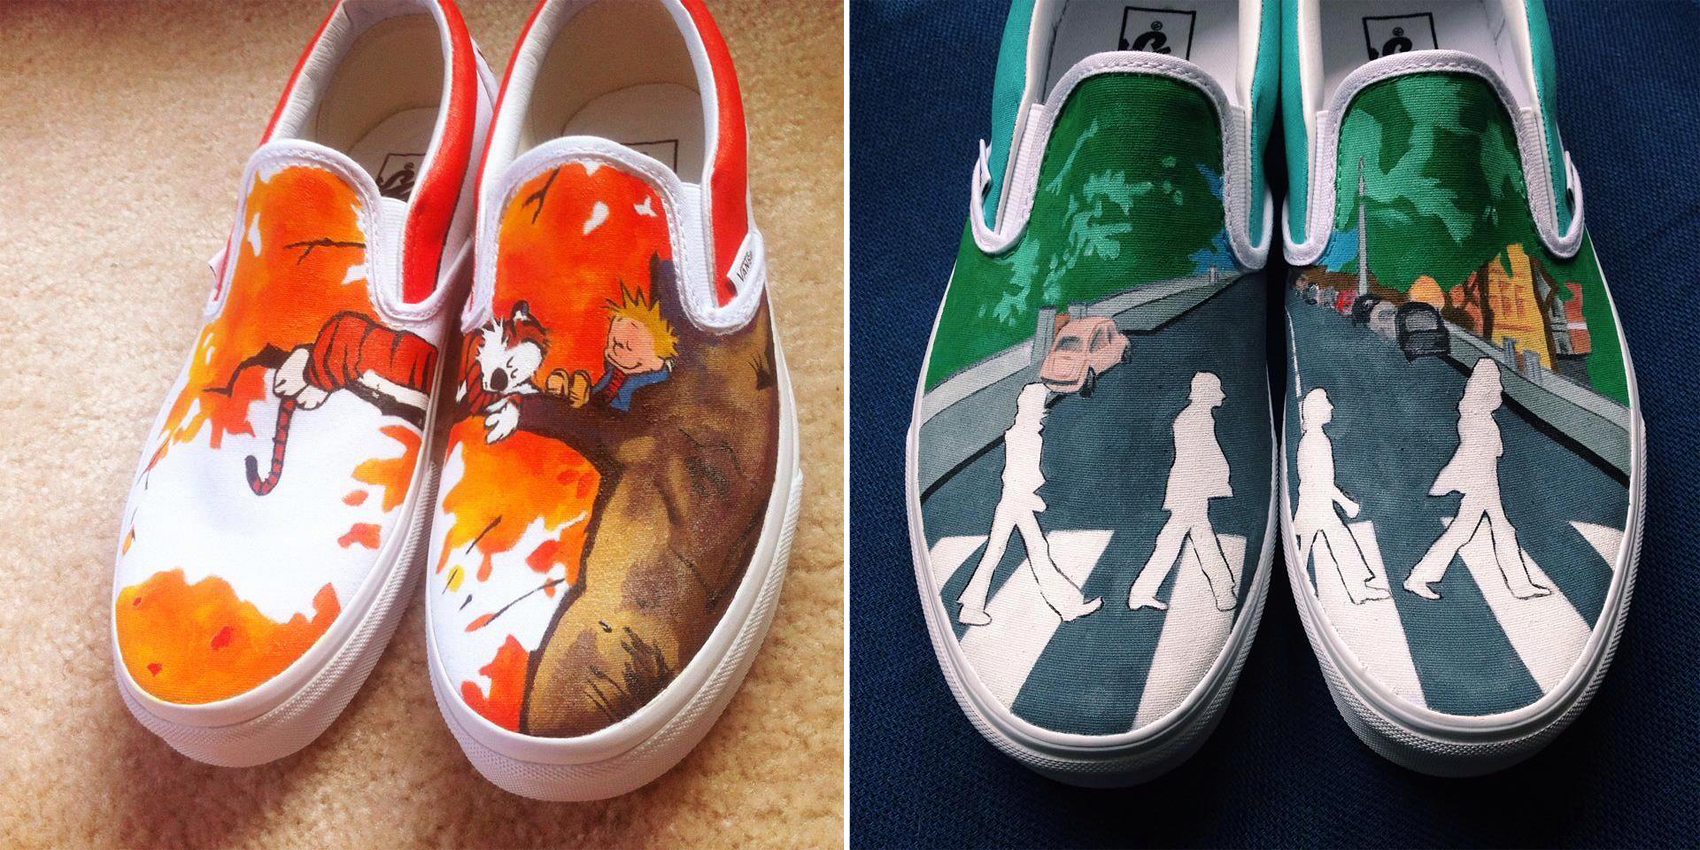 daea6cbc7a Artist Hand-Paints Shoes With Calvin And Hobbes